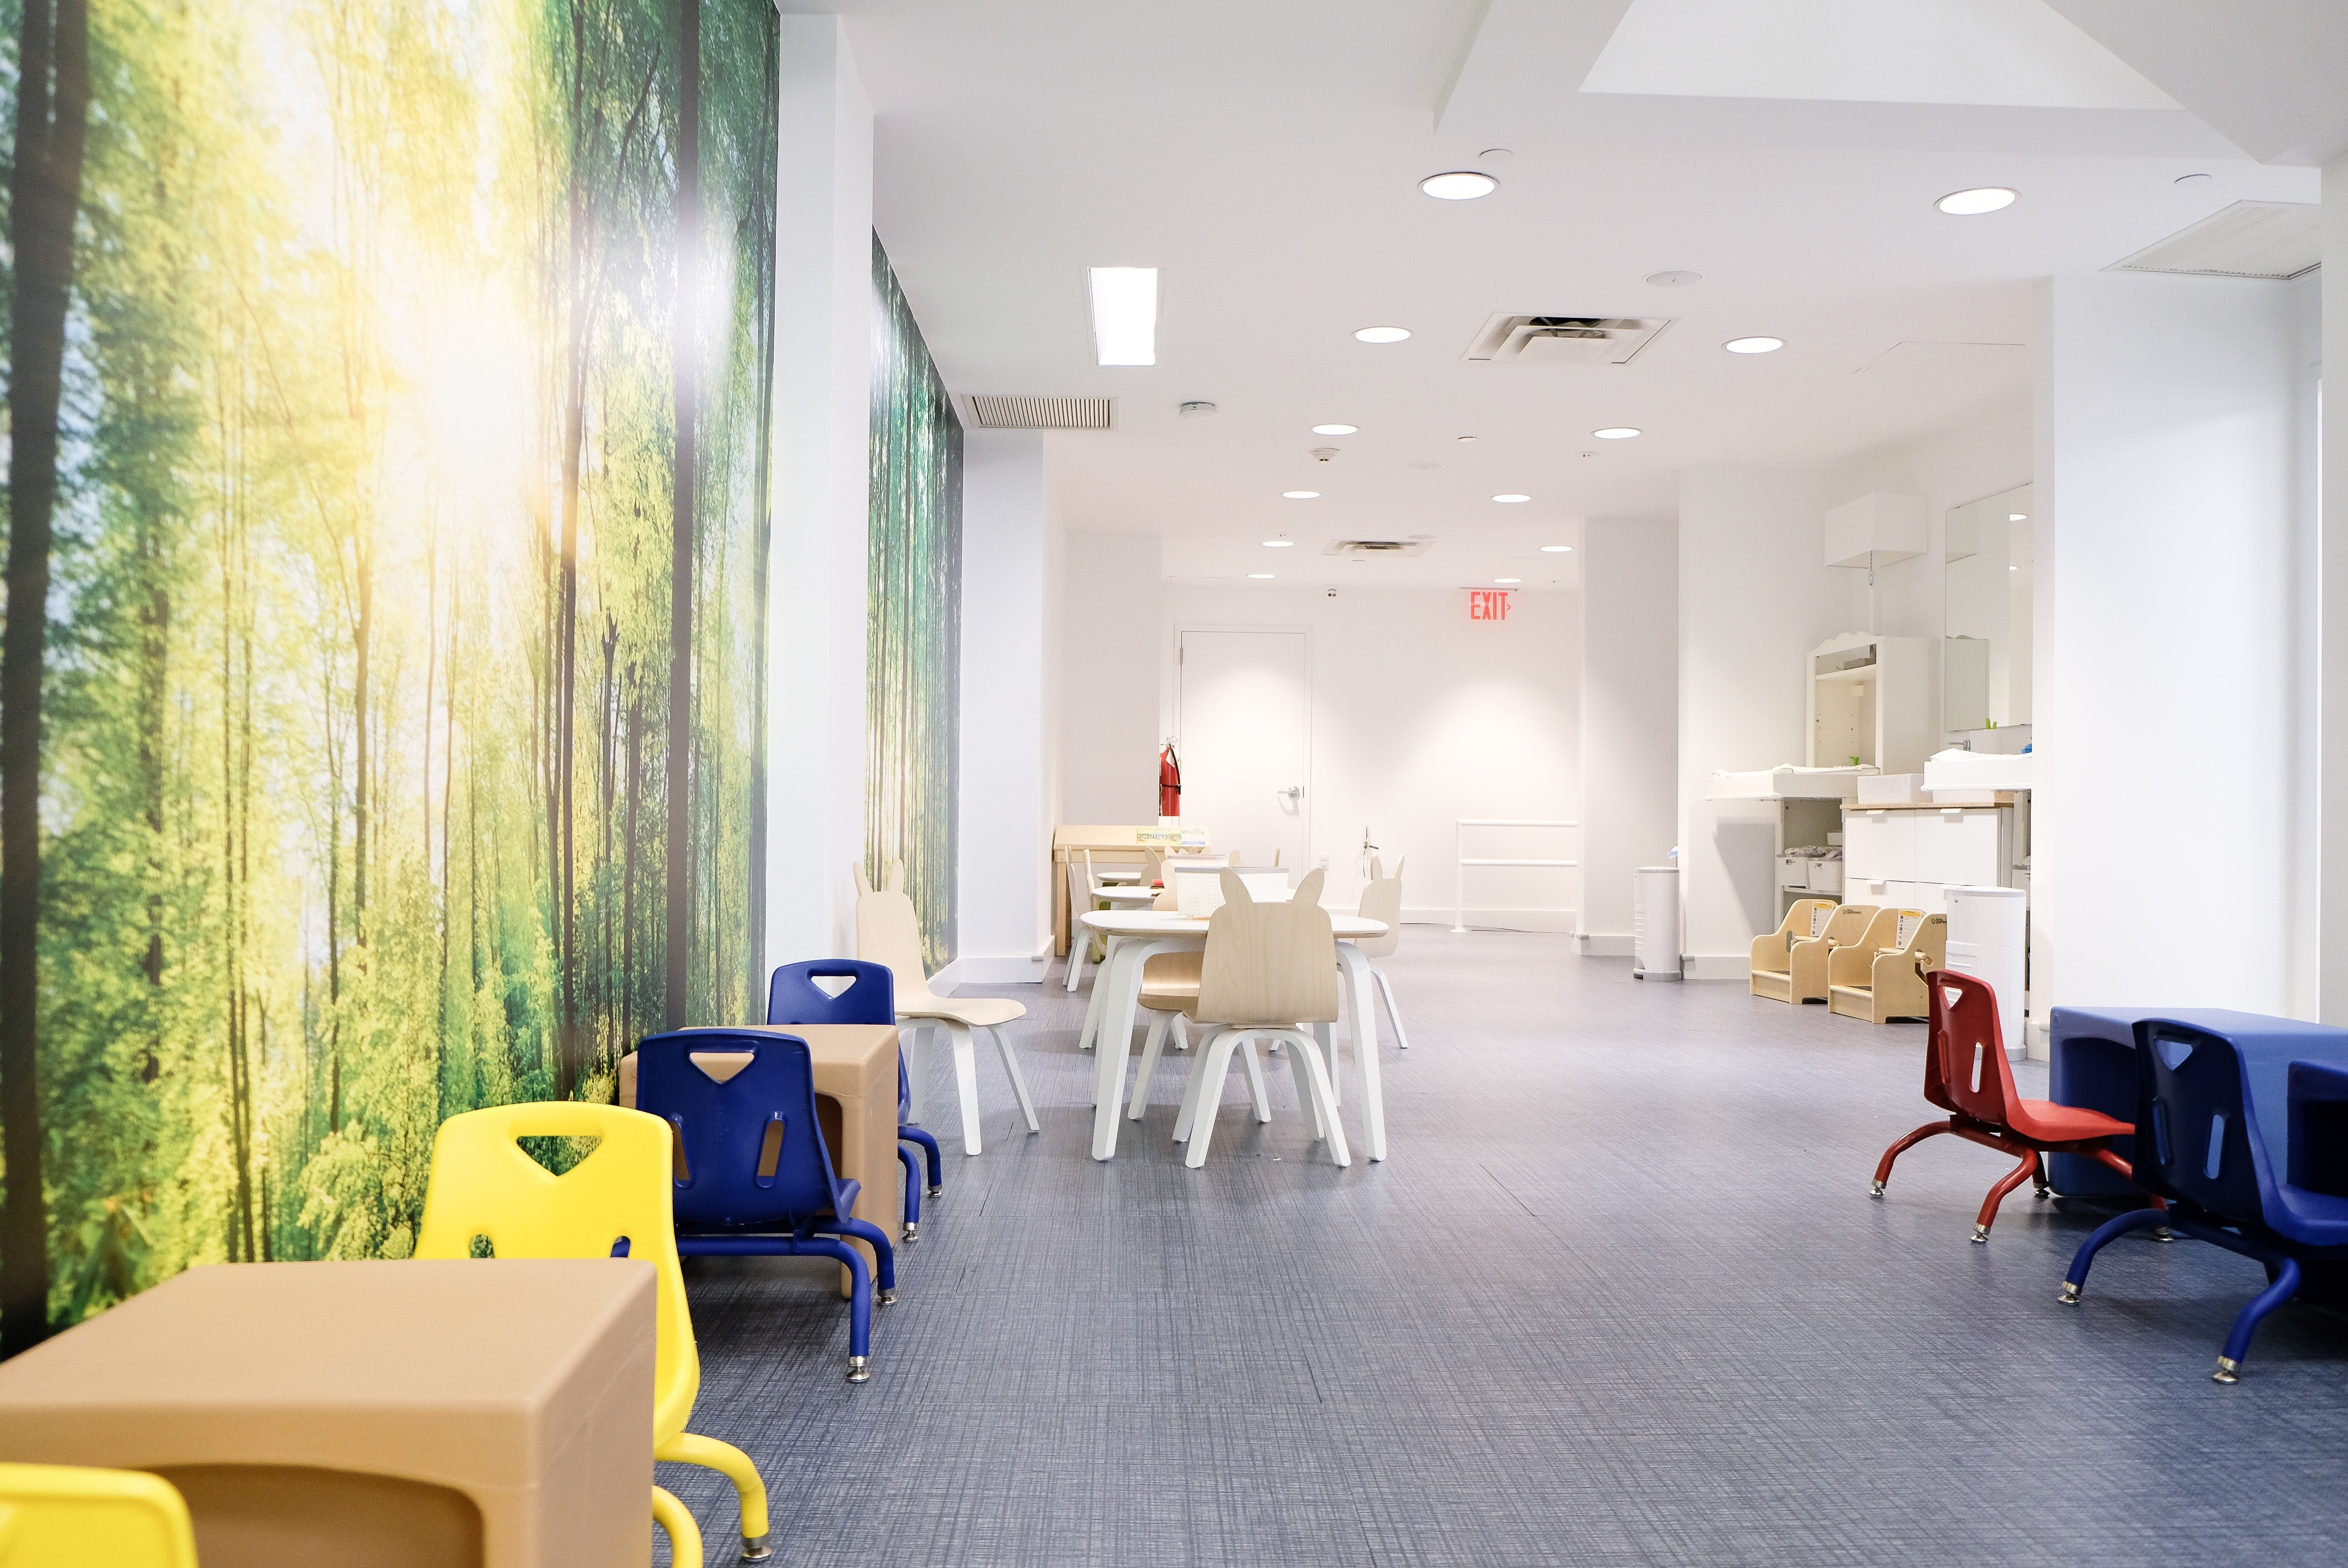 union square play 2 Kellogg's NYC Owners Open Play Center in Same Union Square Building as Their Café